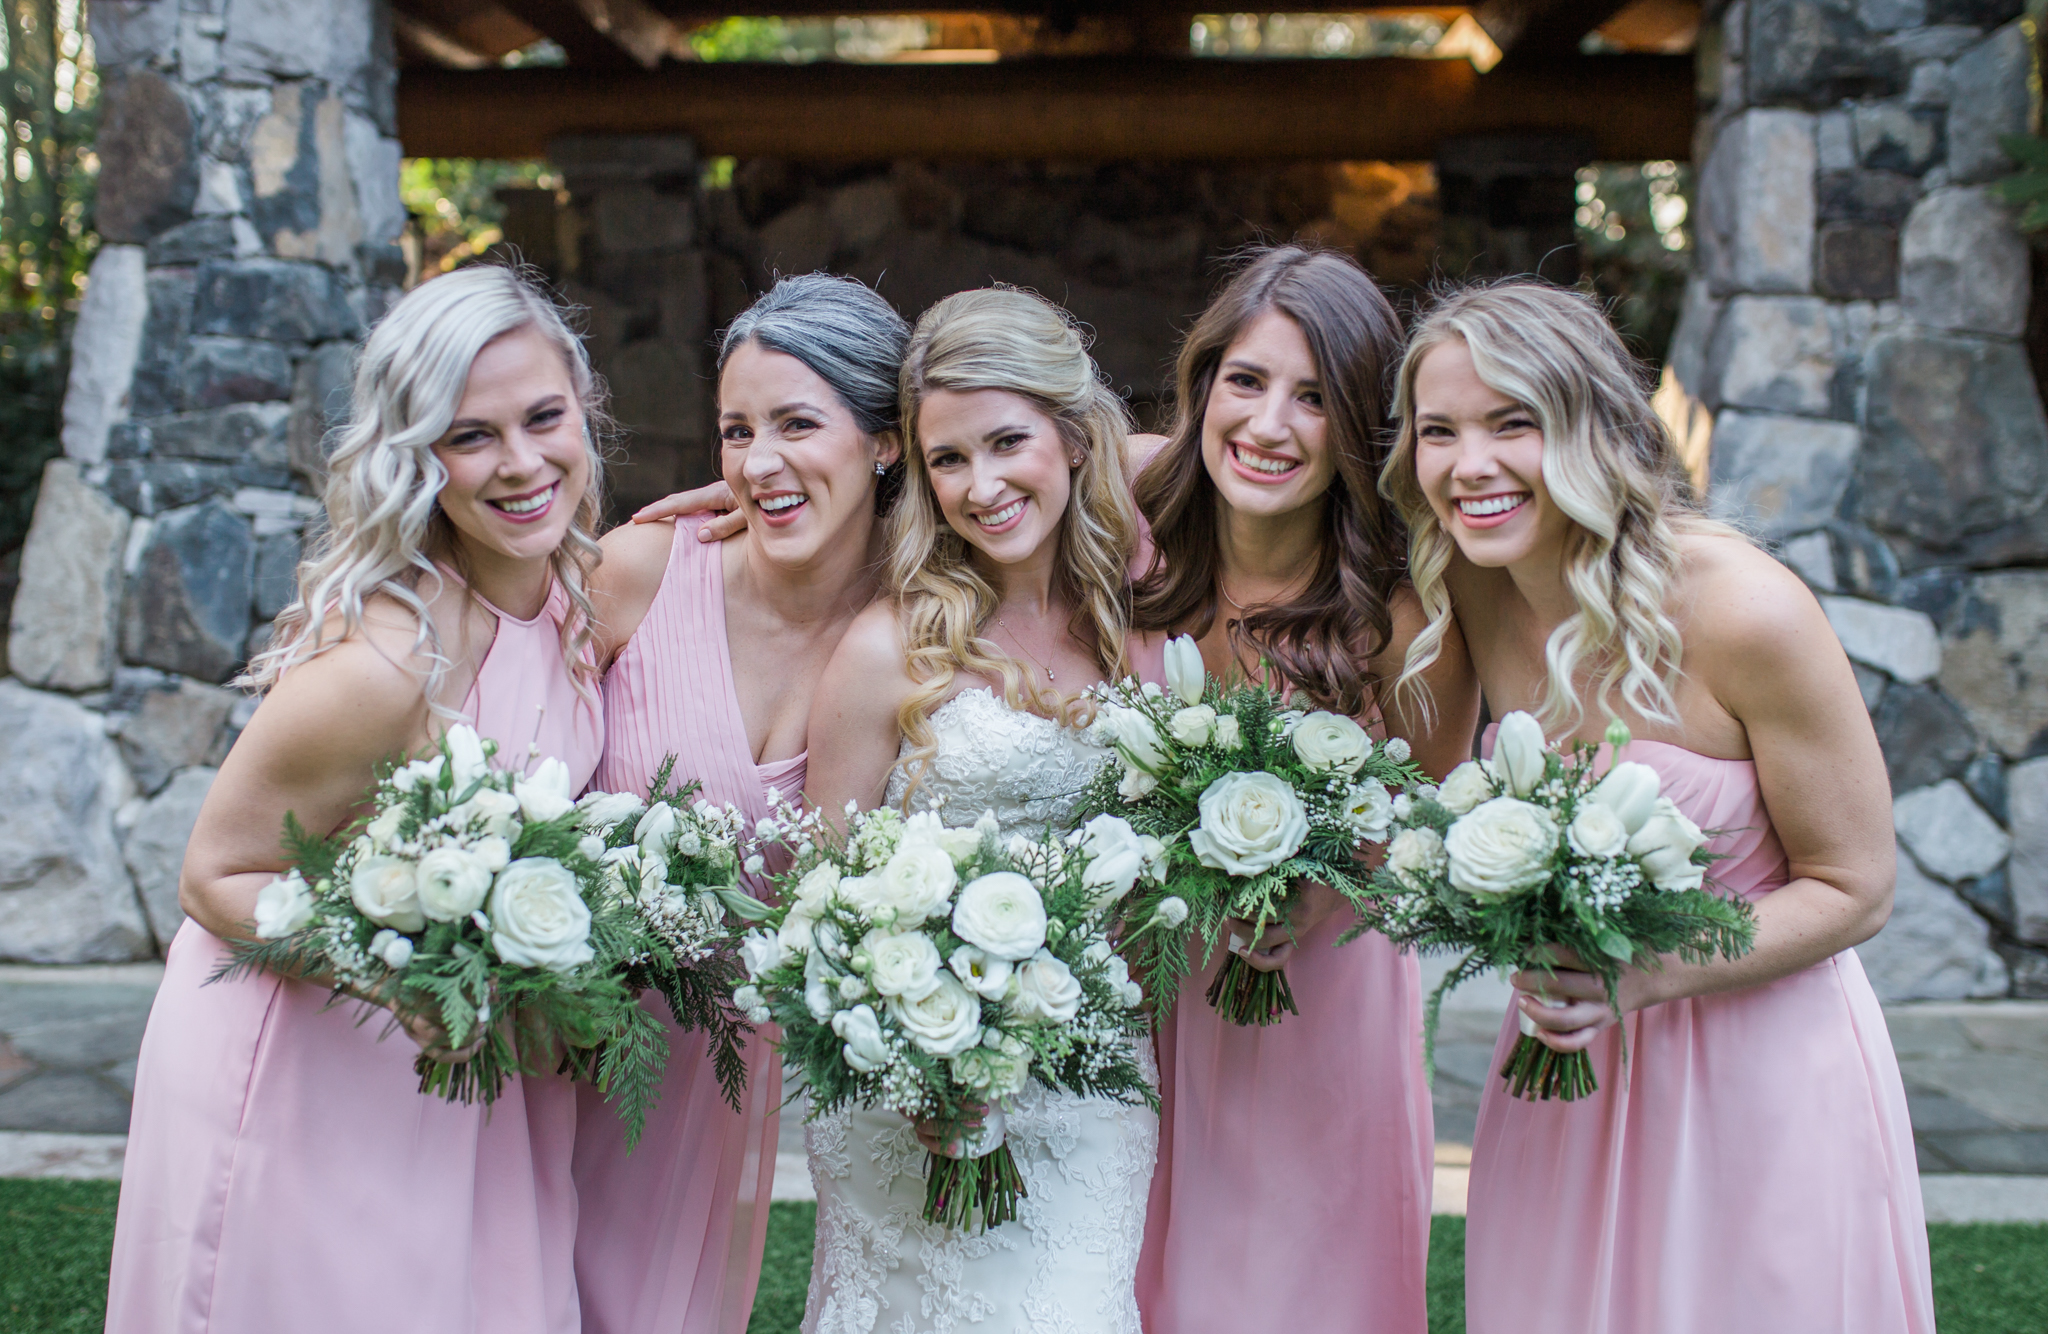 Ridgefield, WA wedding photographer, summit grove lodge weddings, bridesmaids photos